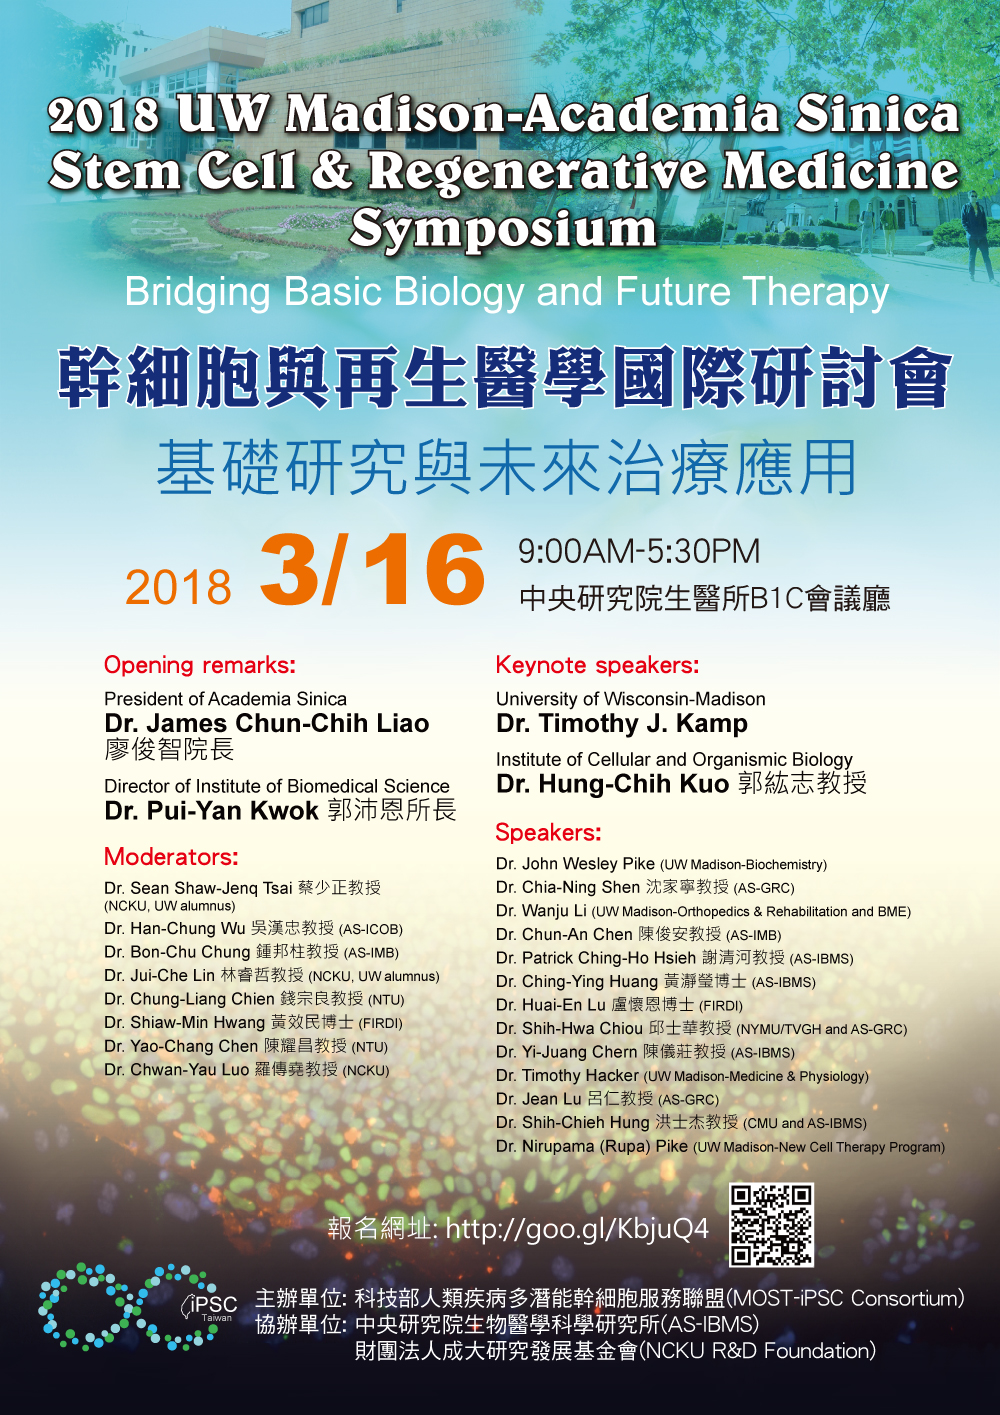 2018 UW Madison-Academia Sinica Stem Cell & Regenerative Medicine